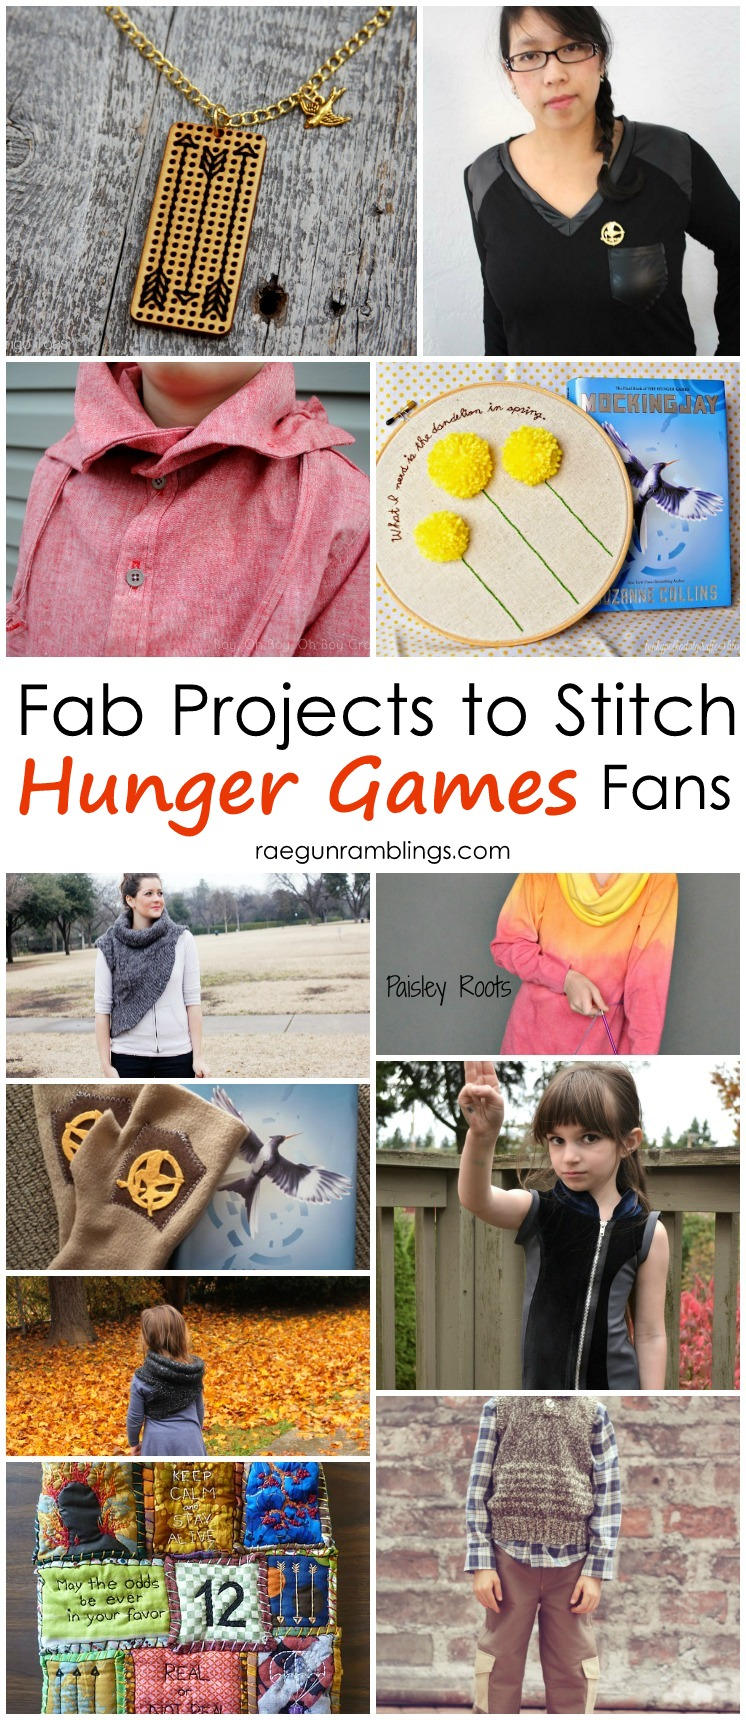 DIY sewing projects perfect for Hunger Games fans (would make great gifts)